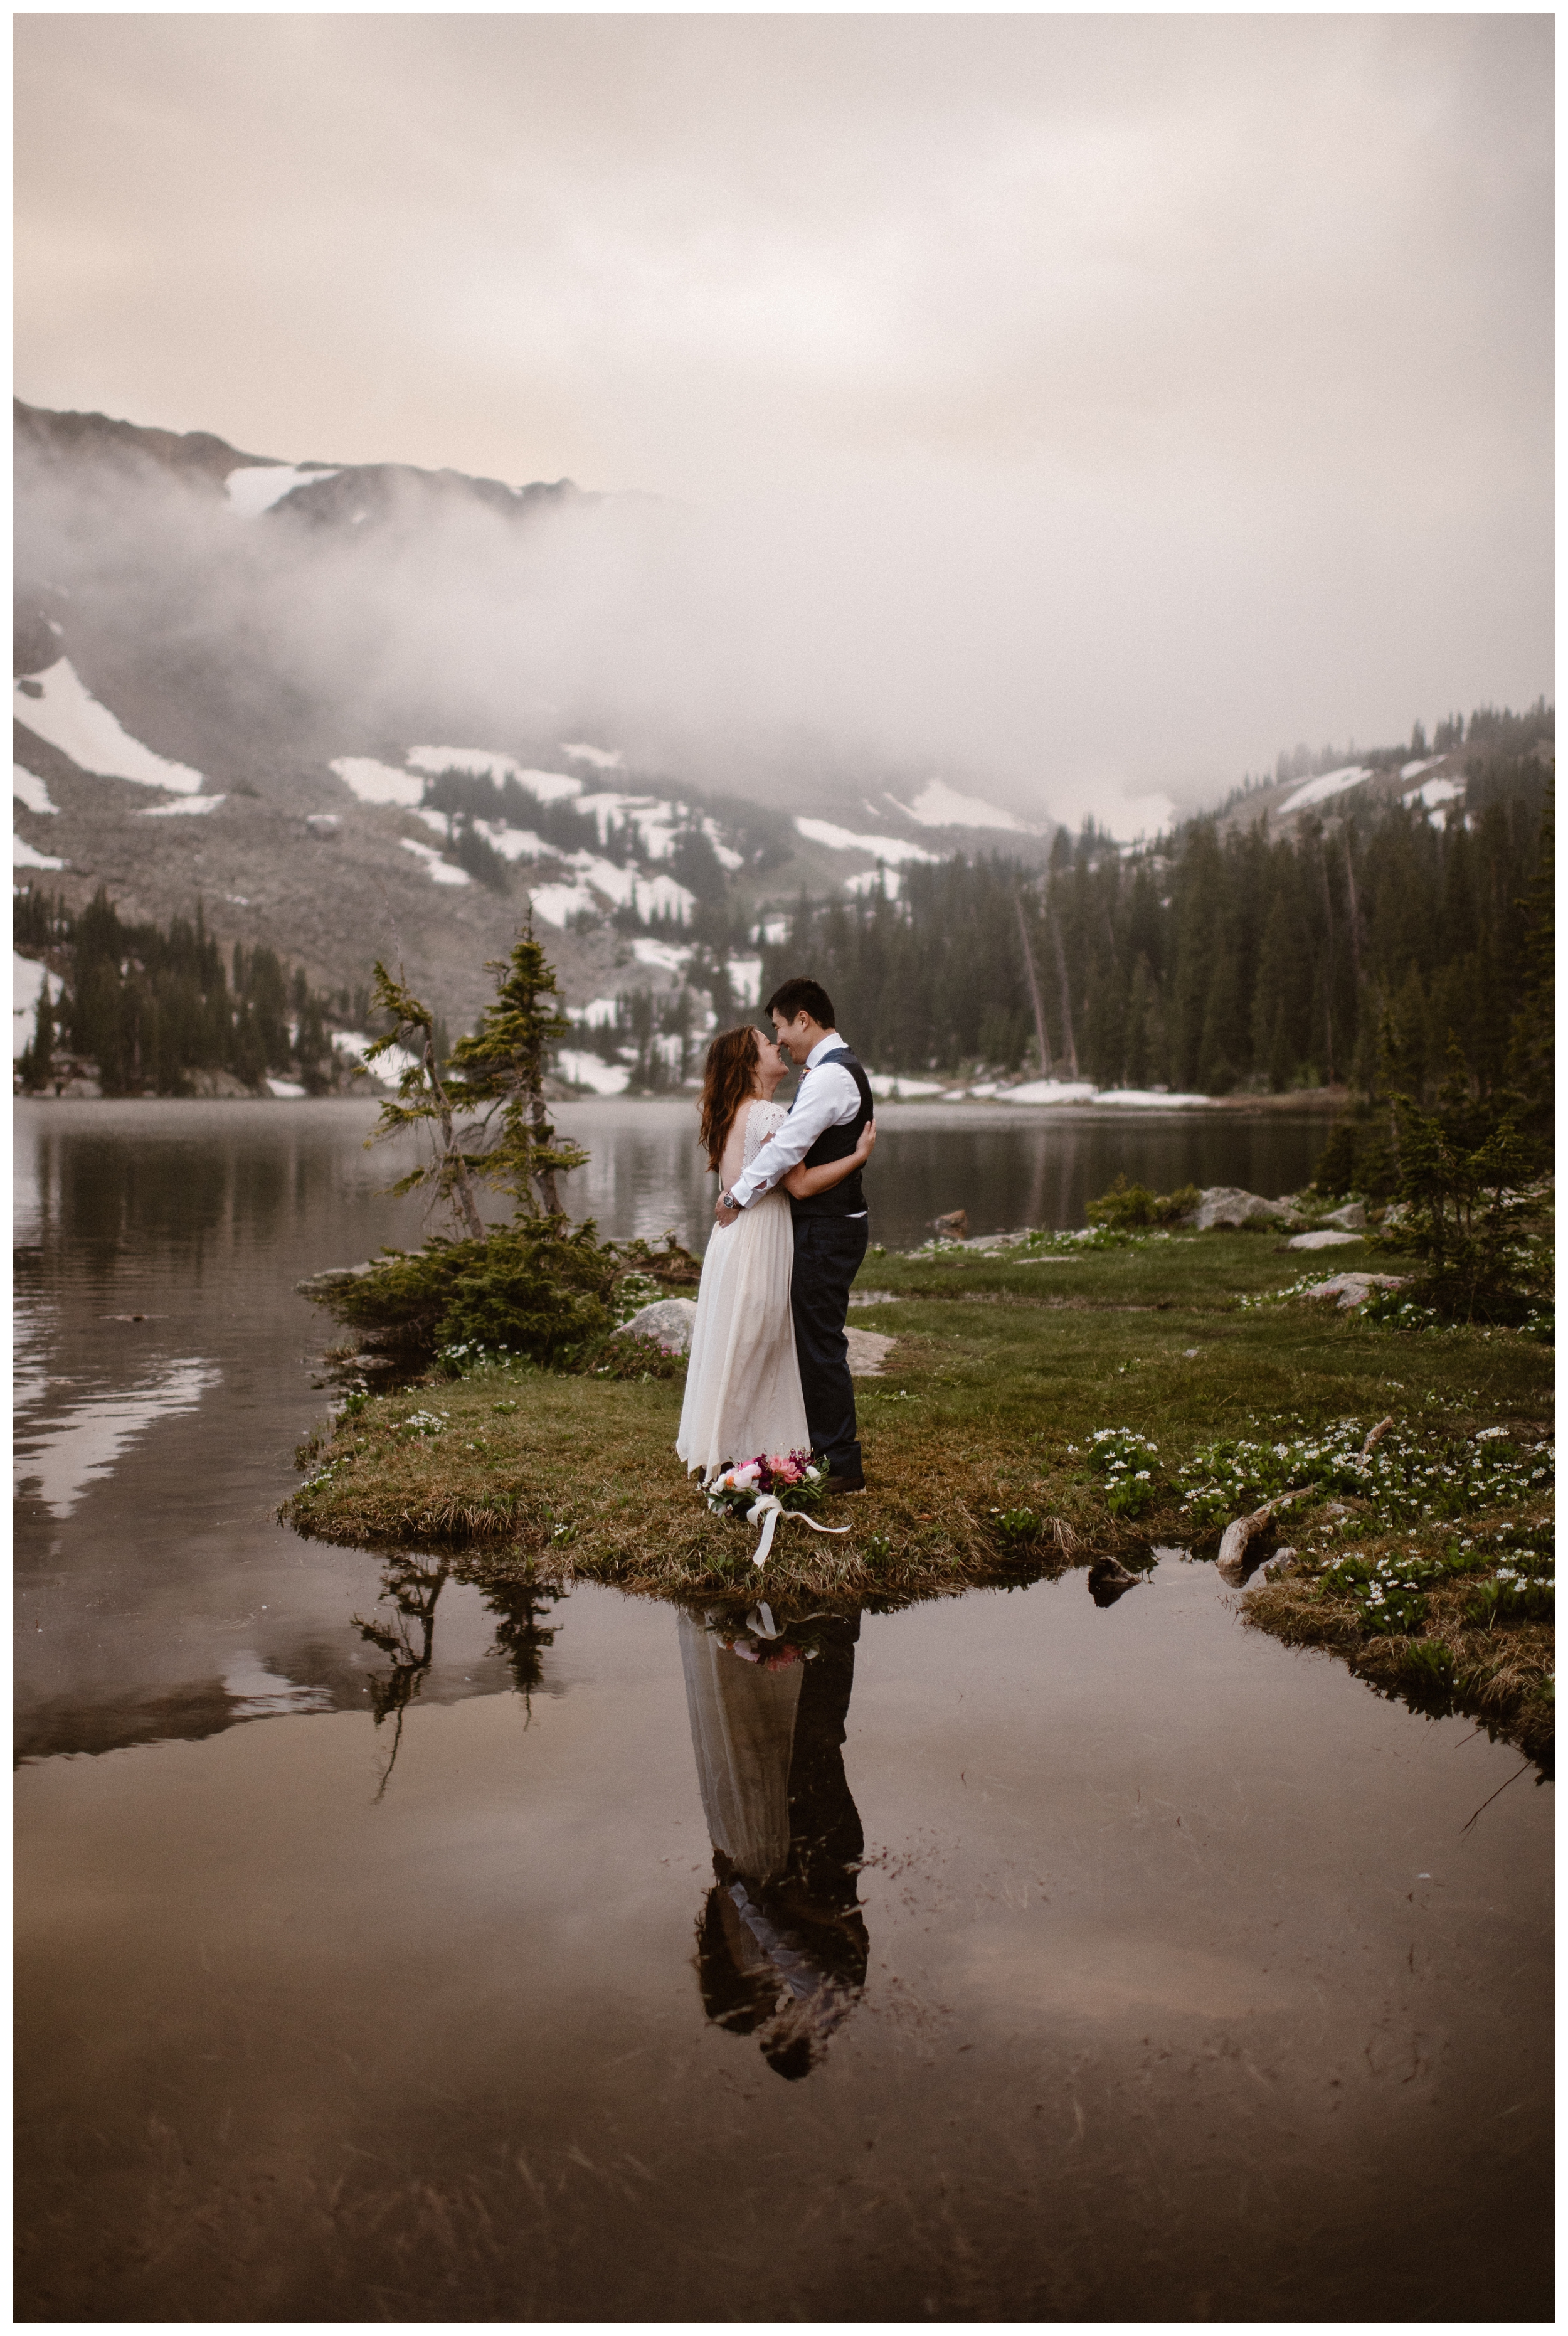 Snow dots the cliffs and clouds dance around Leslie and Jinson after their high alpine lake elopement ceremony at Gem Lake. Photo by Maddie Mae Photo, Adventure Instead.